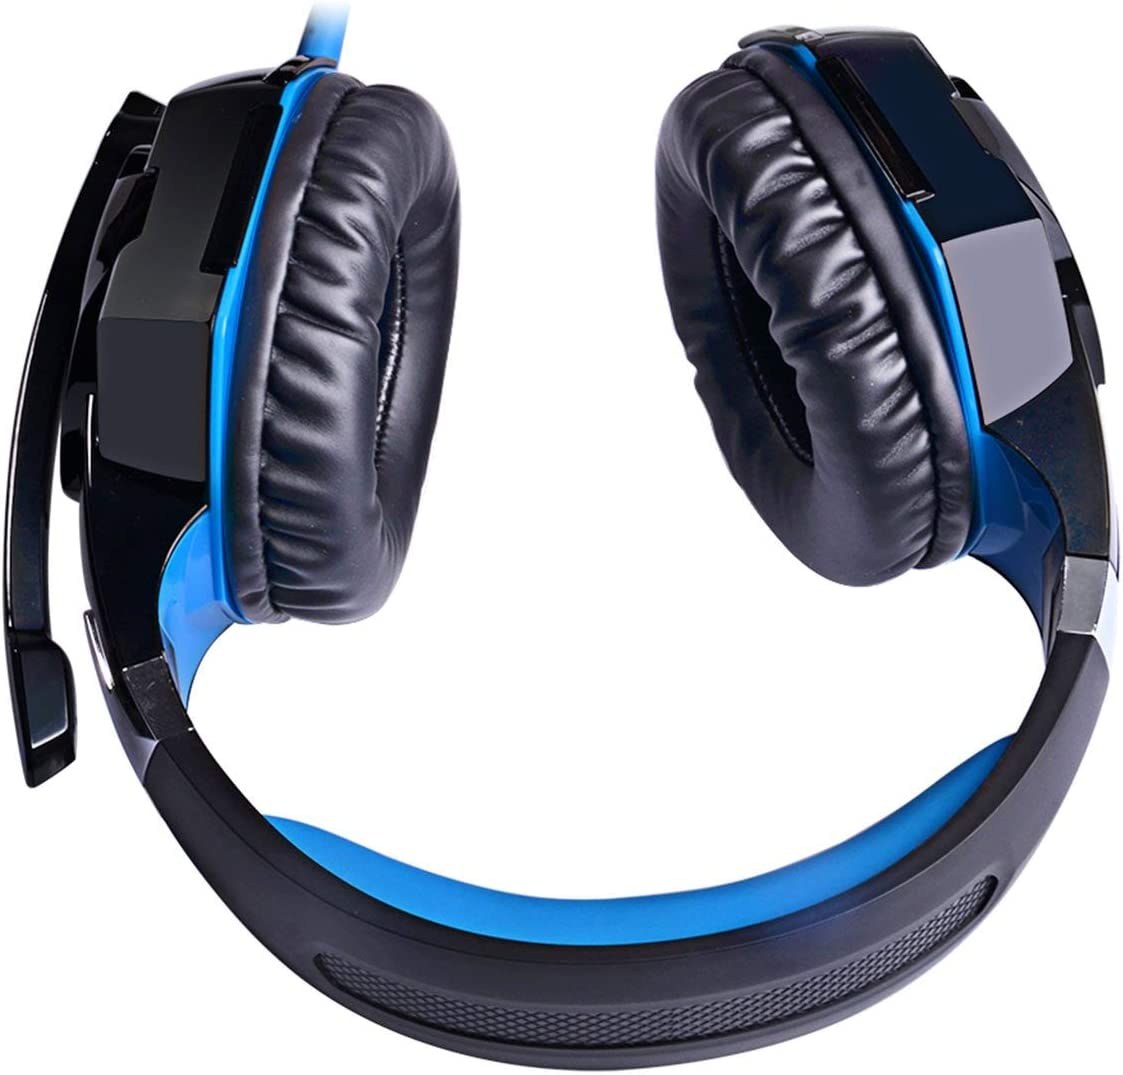 creatYspace KOTION Each Stereo Gaming Headset for Xbox One PS4 PC Surround Sound Over-Ear Headphones with Noise Cancelling Mic LED Lights